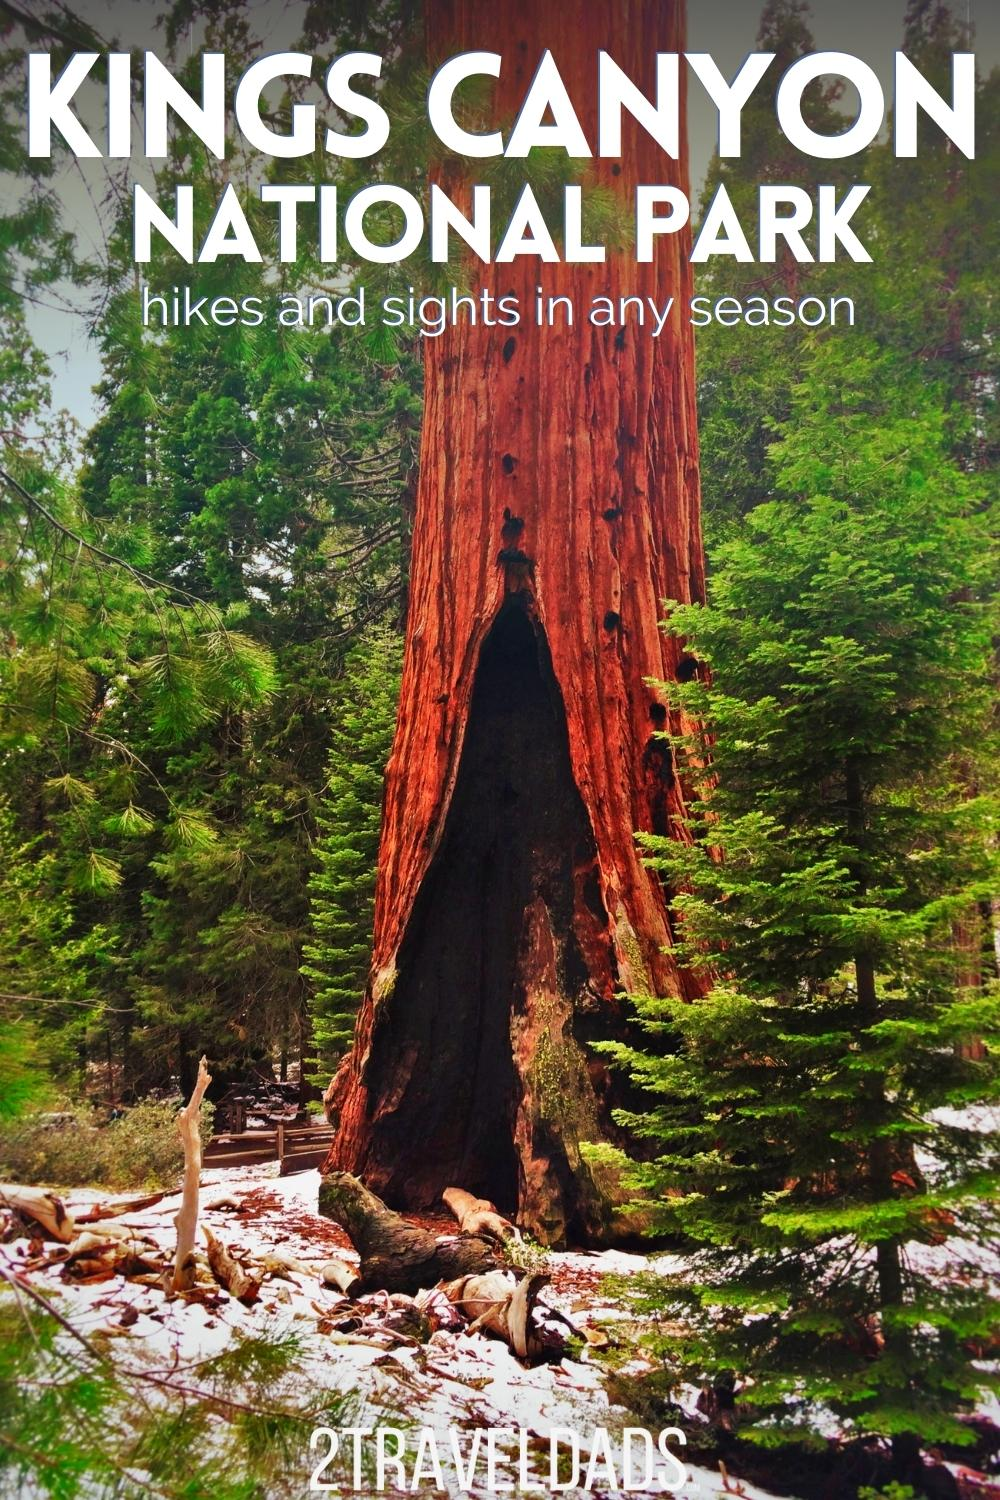 Kings Canyon National Park is beautiful and full of epic trees and view. Visiting Kings Canyon in any season is fun and interesting, but beware of snowy days. Tips and tricks for hiking at Kings Canyon and where to stay (National Park lodge!).